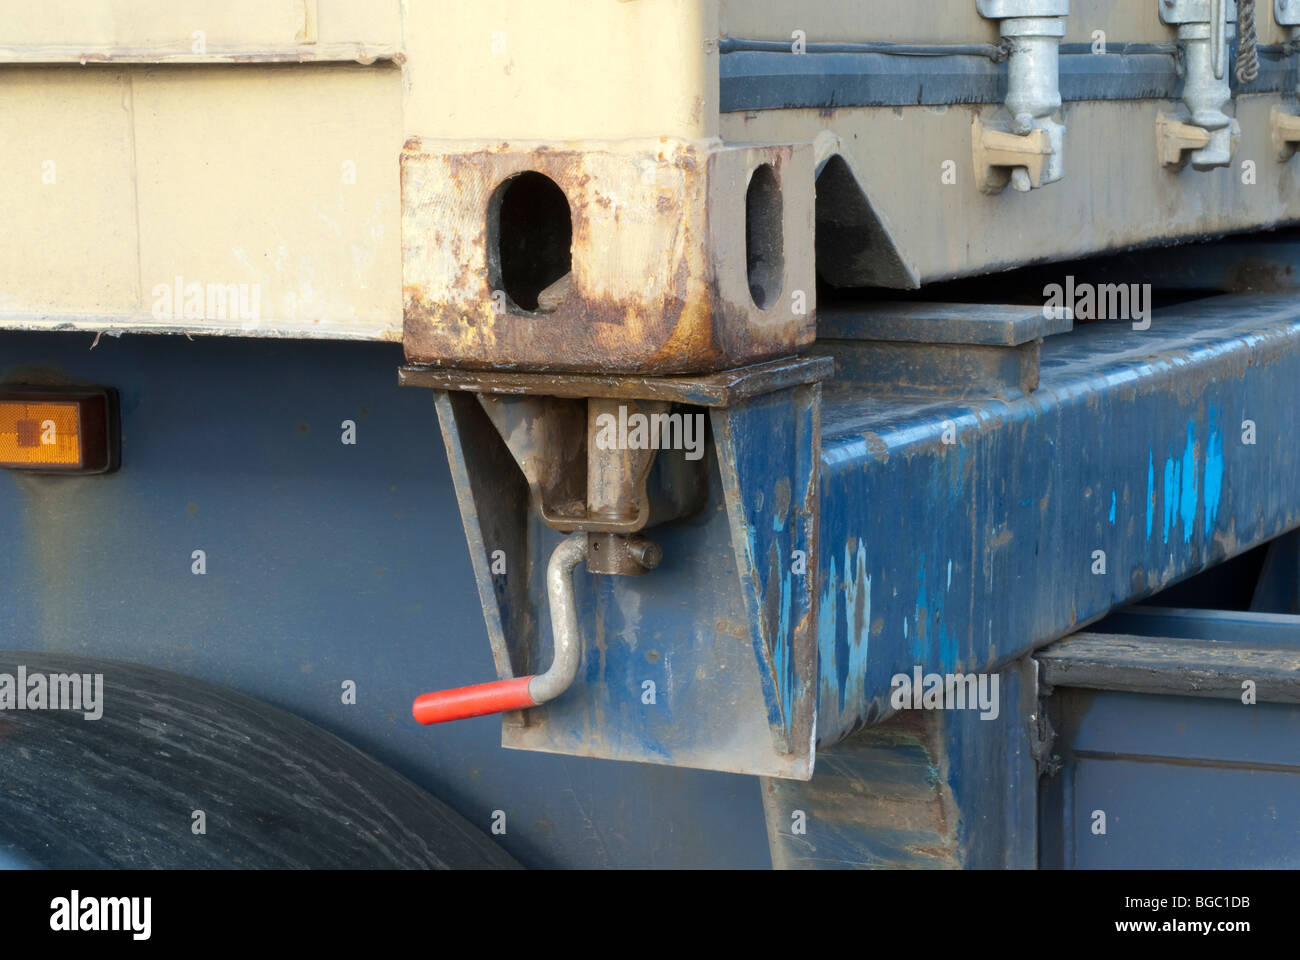 Shipping container twistlock connection on hgv in locked